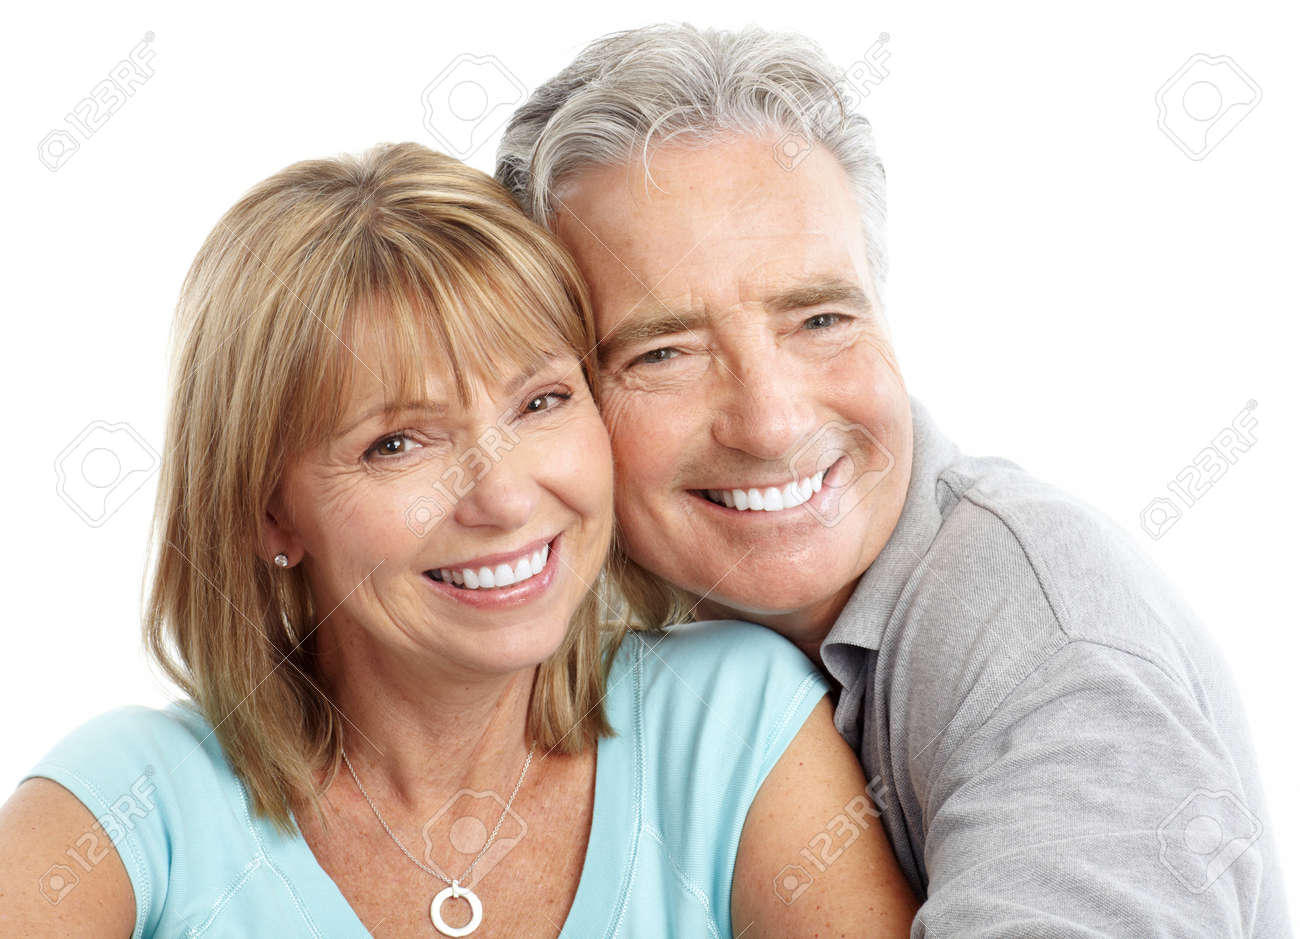 Happy seniors couple in love. Healthy teeth. Isolated over white background Stock Photo - 7231973